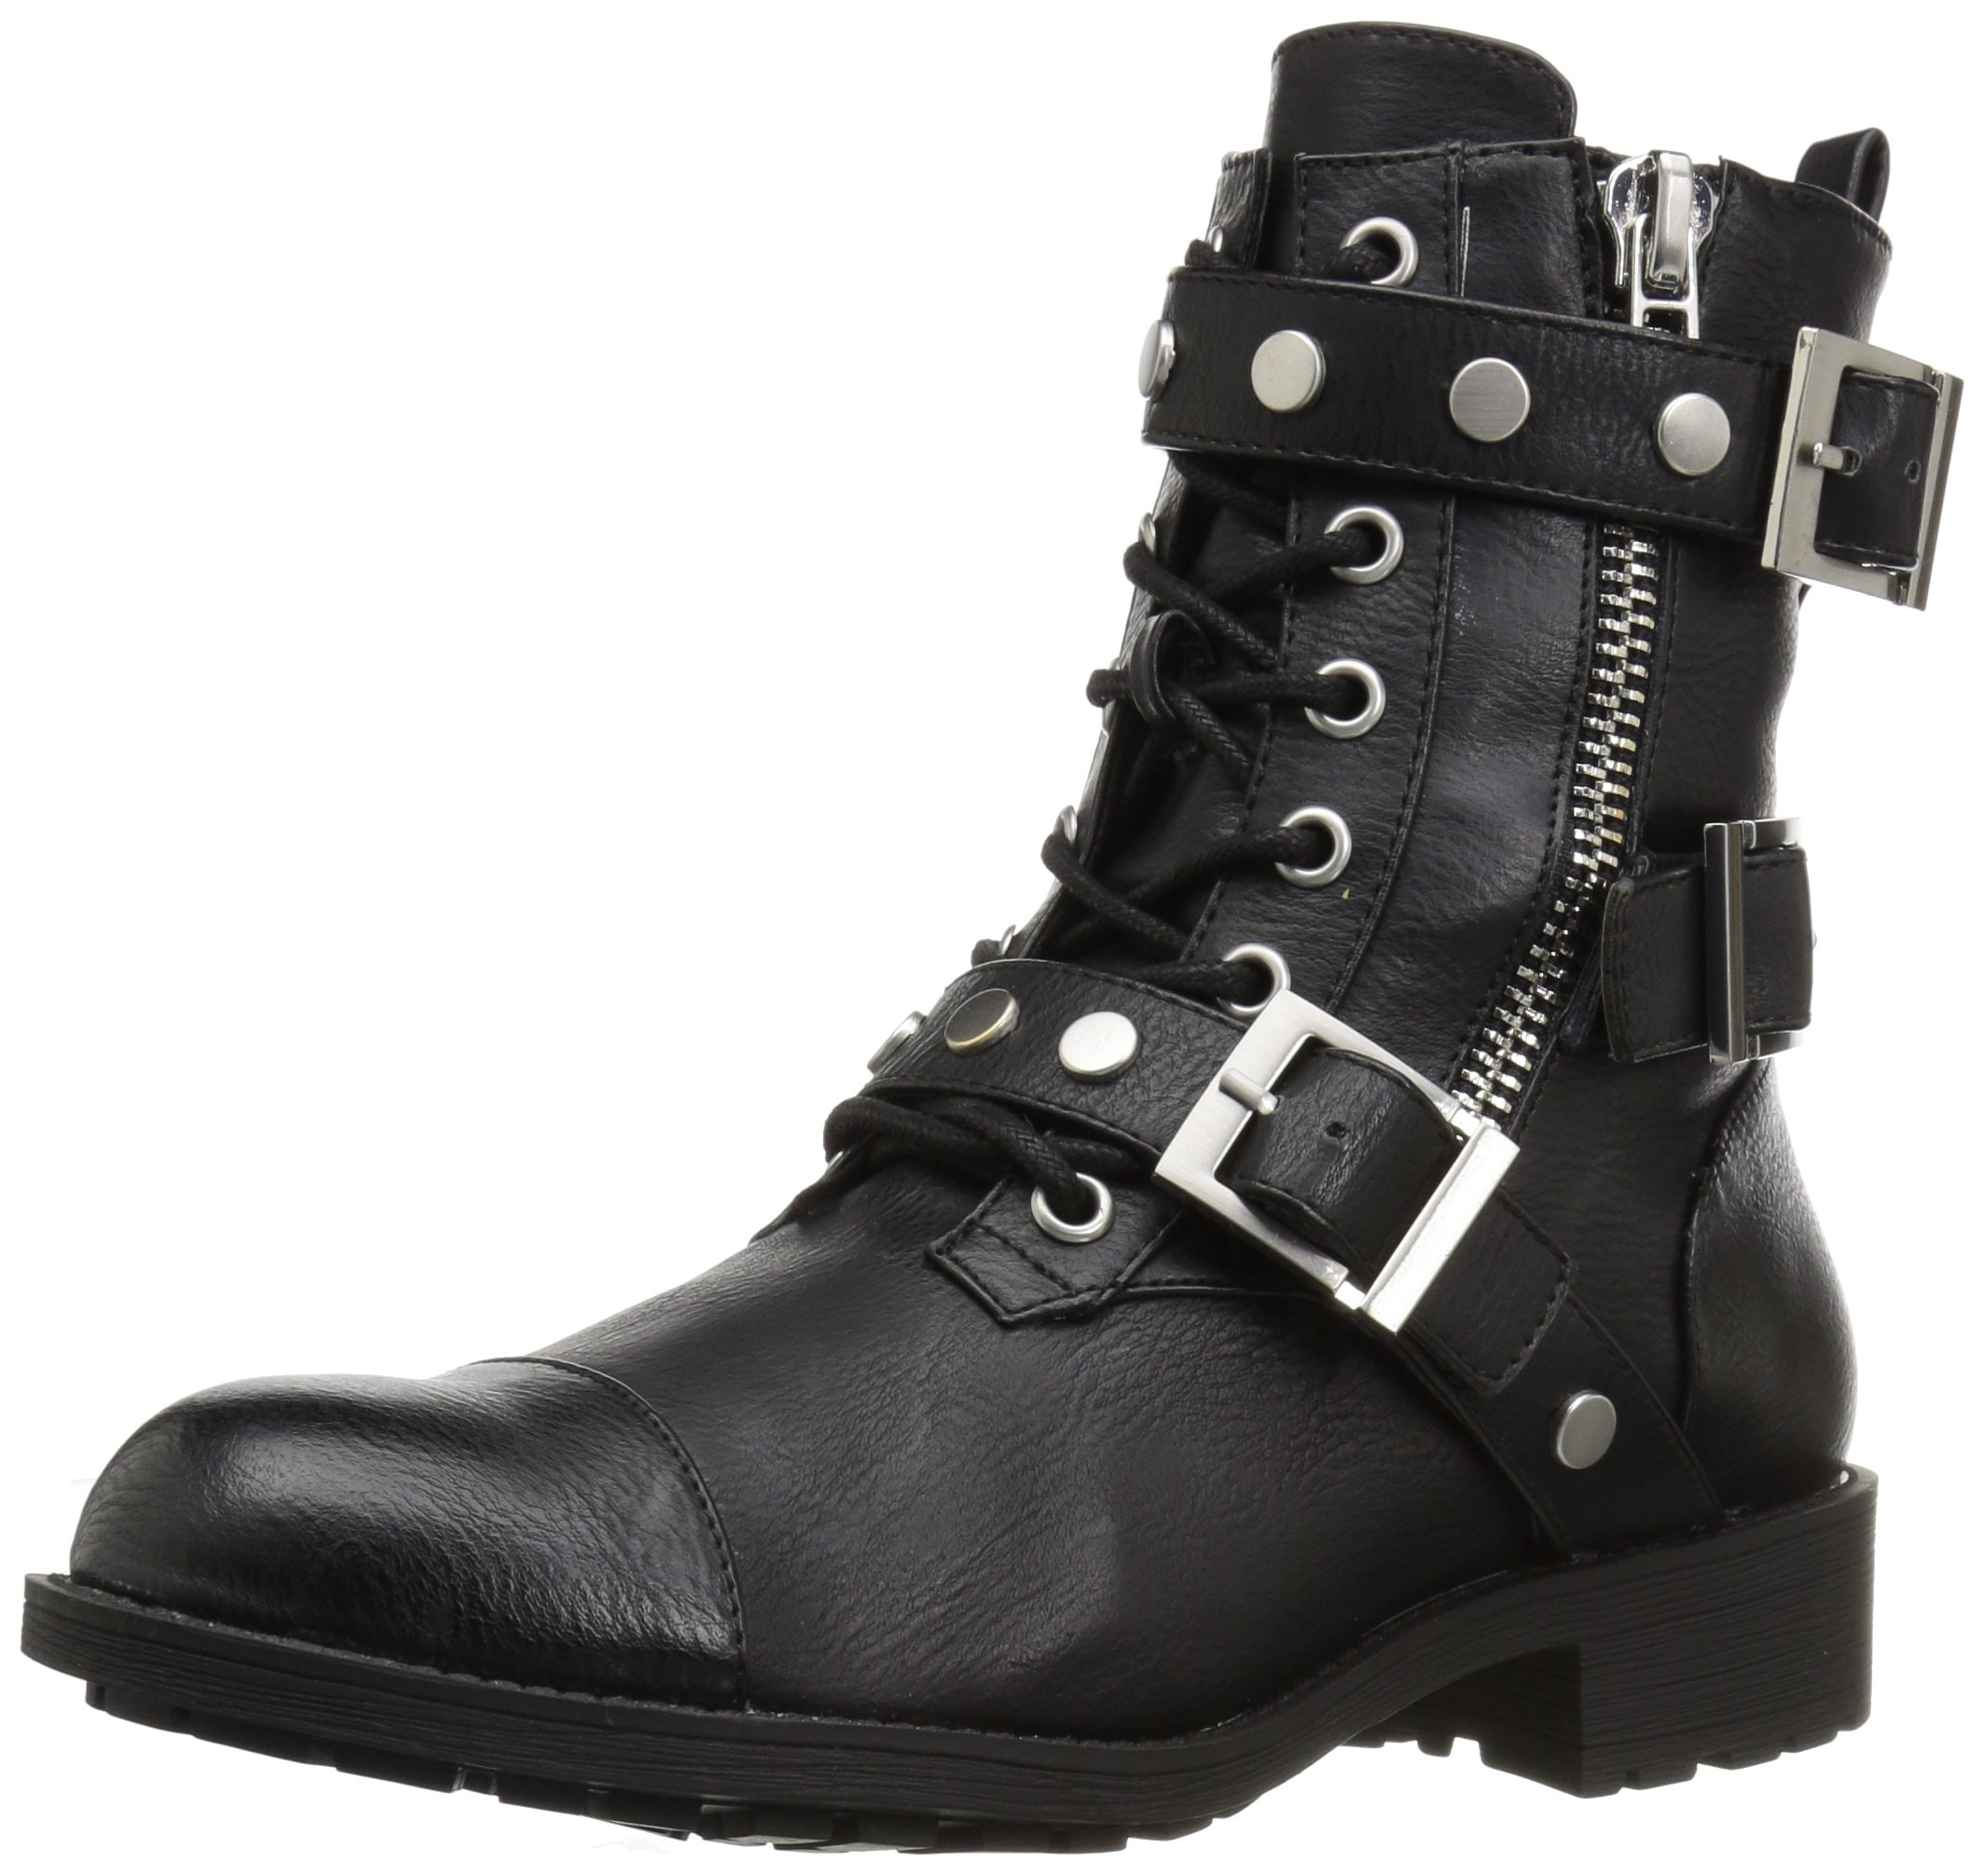 Style by Charles David Women's Caden Motorcycle Boot, Black, 7.5 Medium US